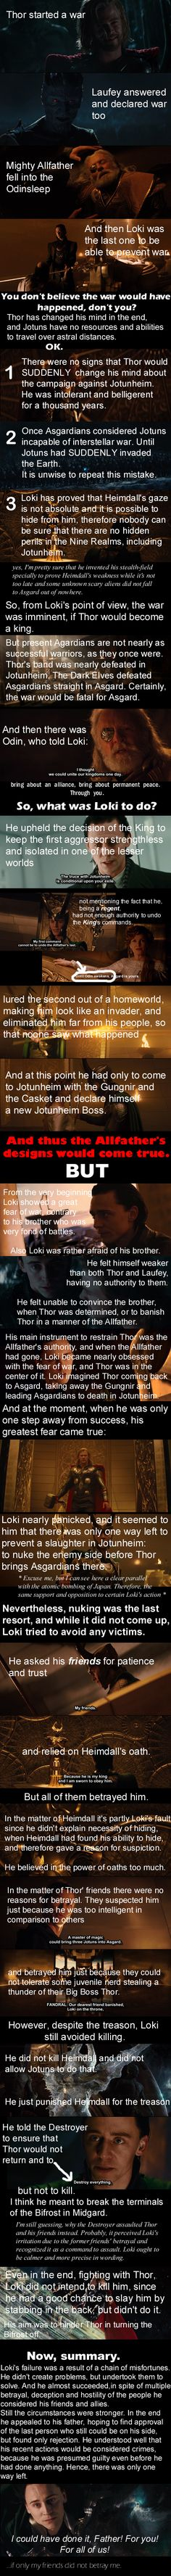 This one is not a fangirl theory. It is what I saw, when I watched the Thor-movie for the first time. I knew nothing about this movie. I didn't even know that it was based on comic-books. Therefore I was completely unaware of who was supposed to be good guys, and who was meant to be bad guys. And I saw this. After SUCH presentation I became totally unable to regard this character as a villain.